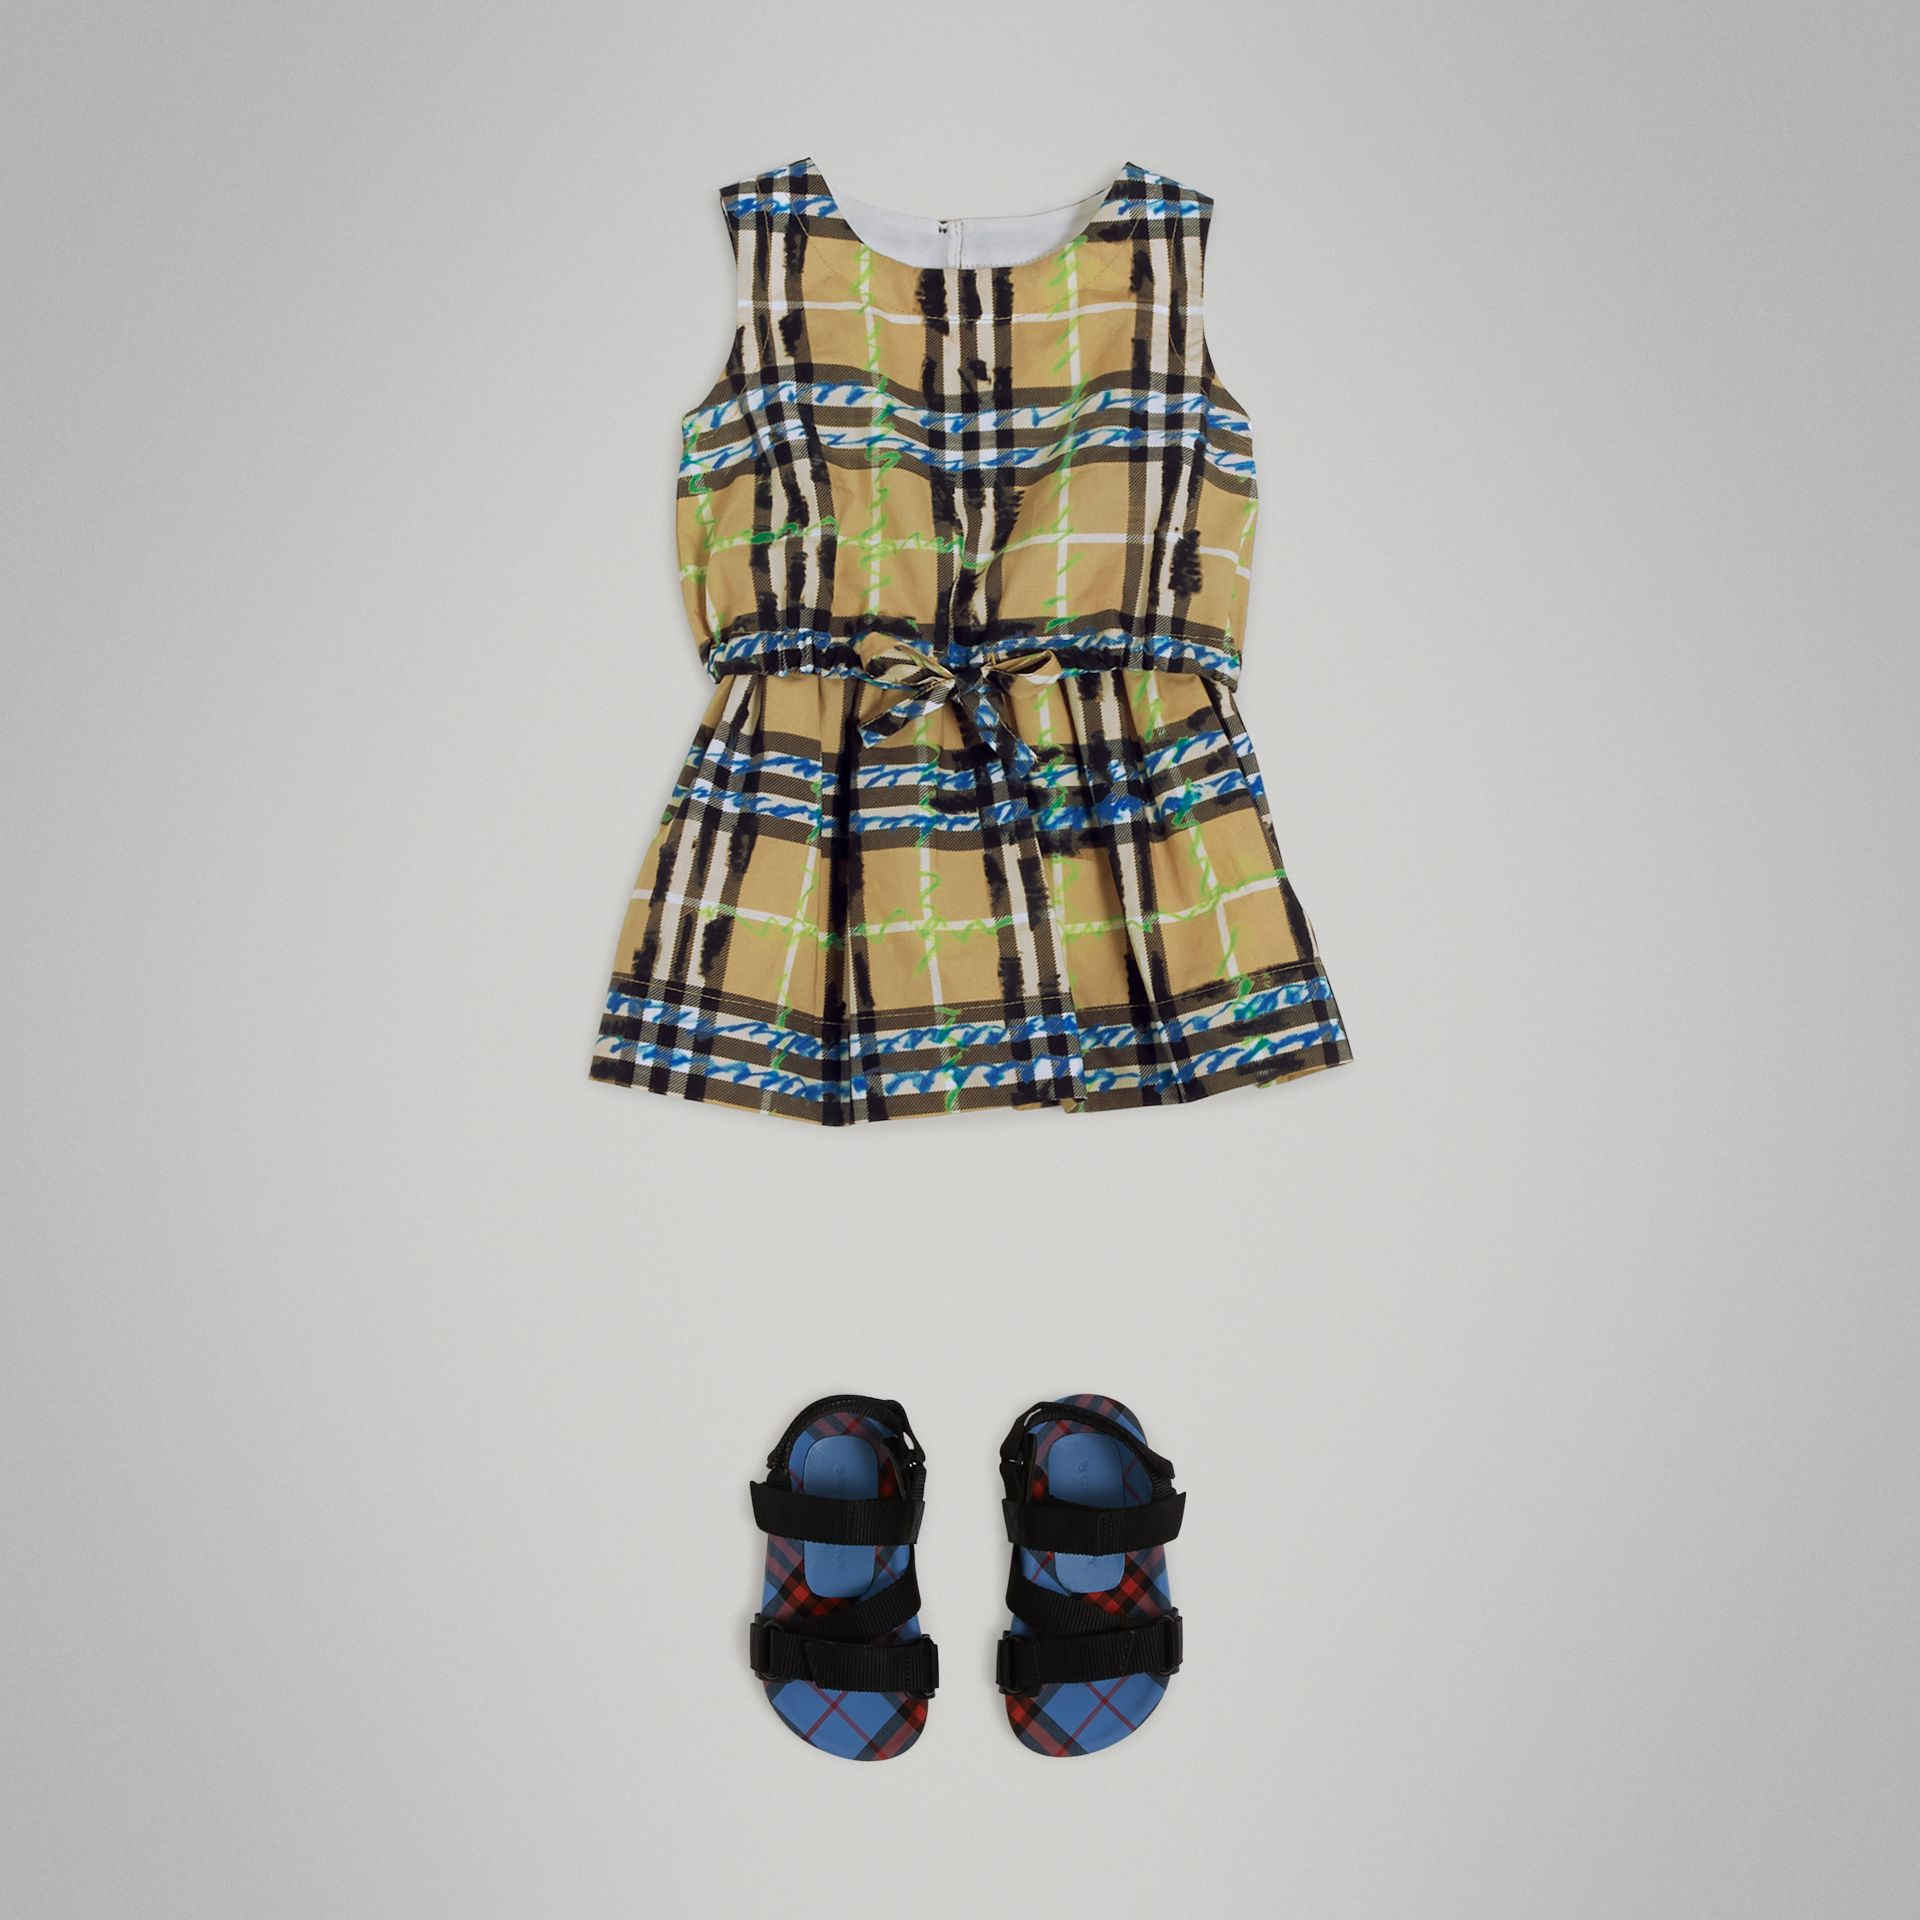 Scribble Check Print Cotton Drawcord Dress in Bright Blue - Children | Burberry United Kingdom - gallery image 2